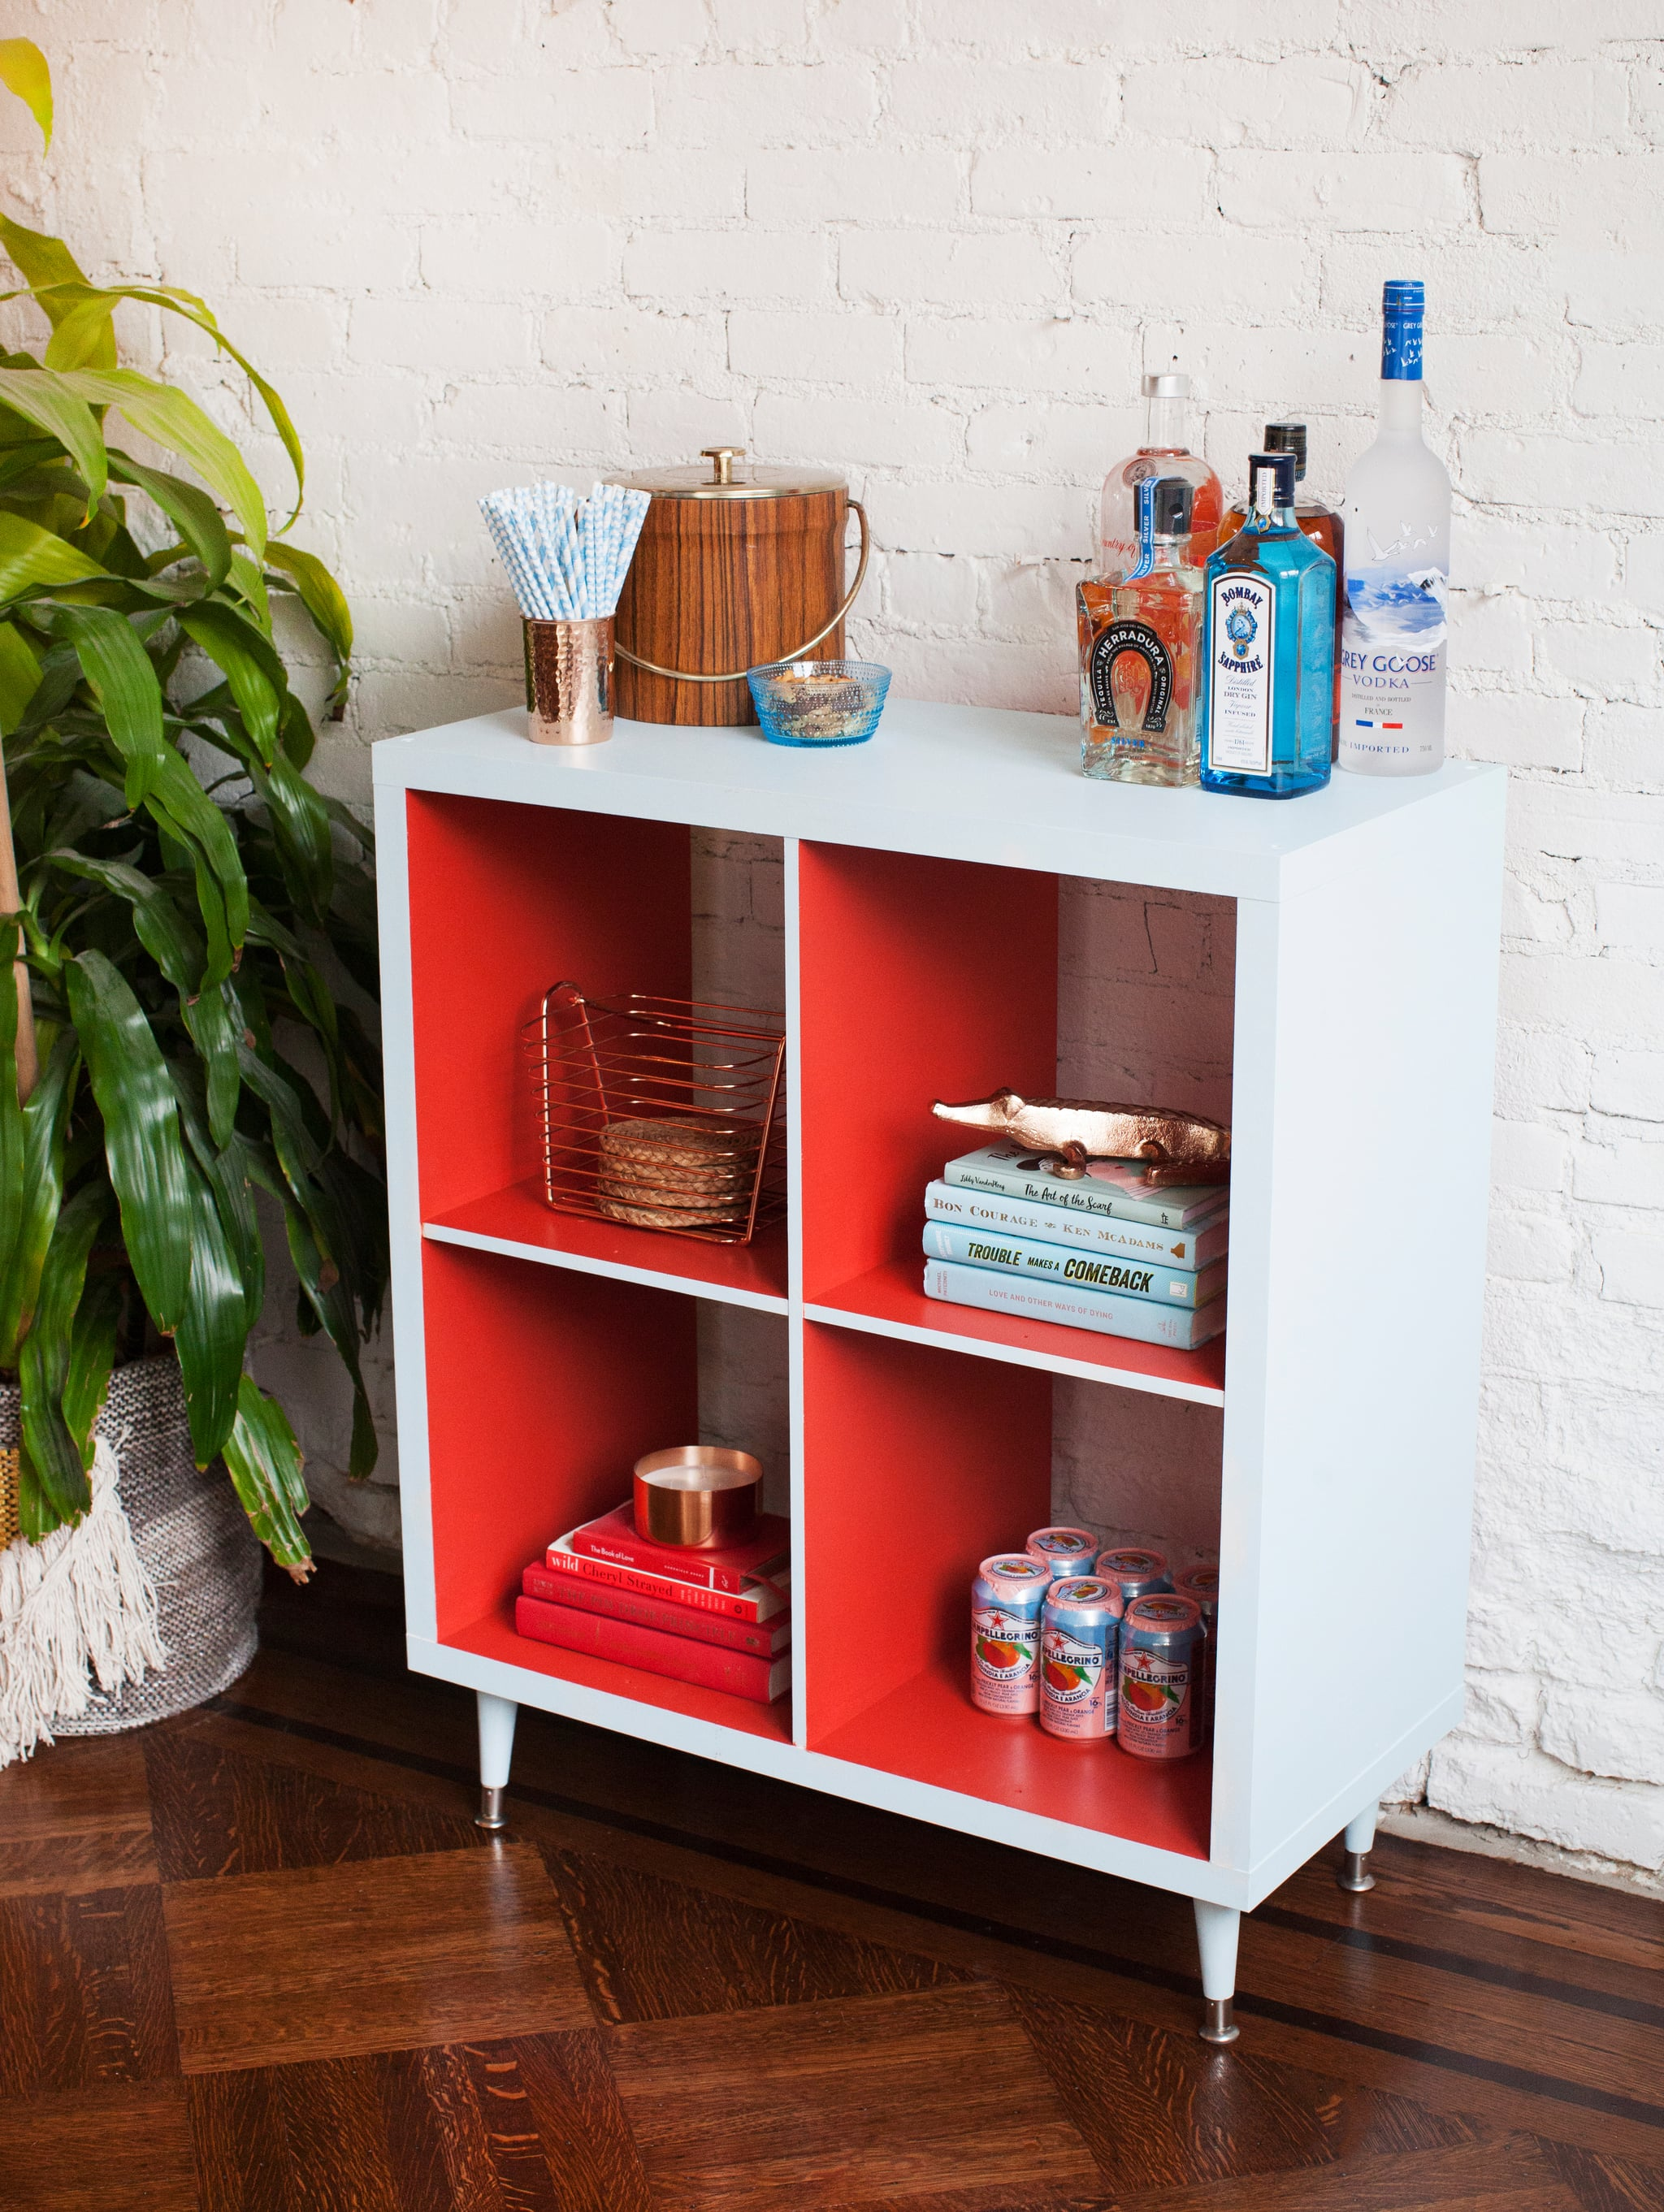 This Easy DIY Will Seriously Brighten Up Your Room